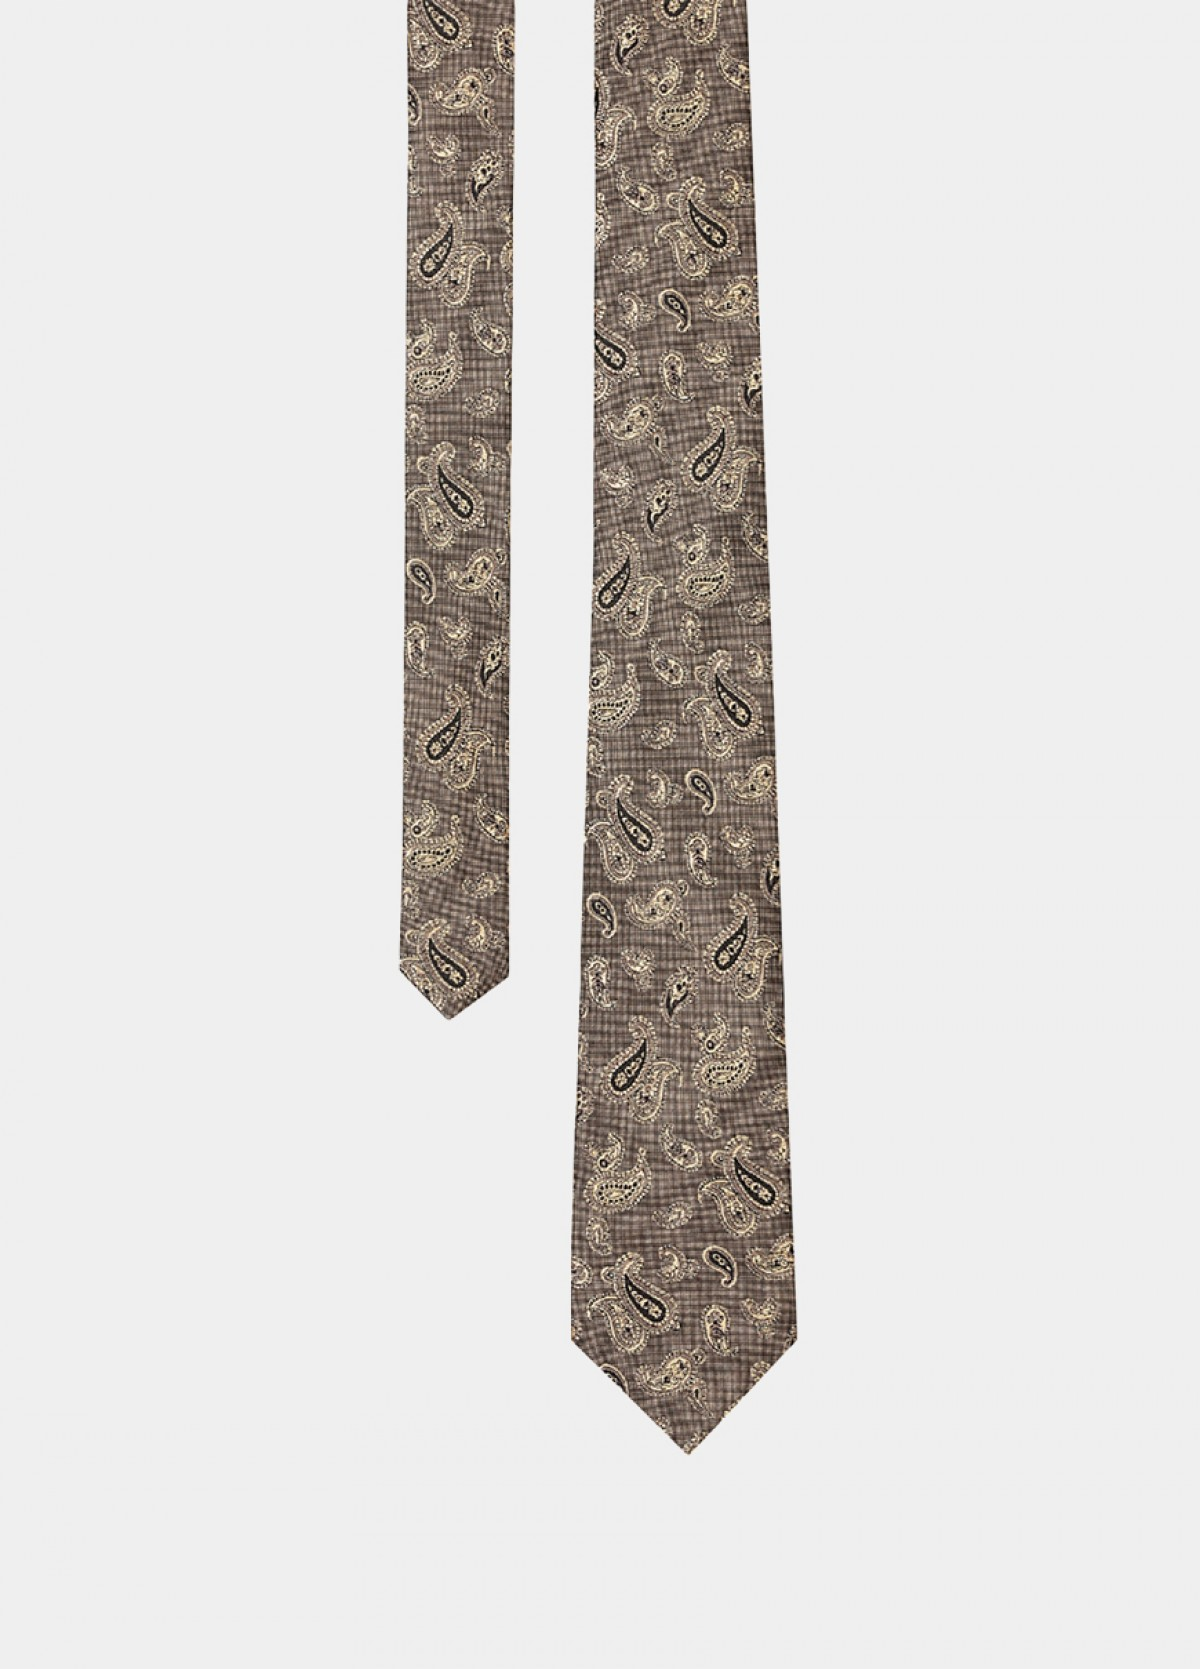 The Gold Stain Resistant Tie